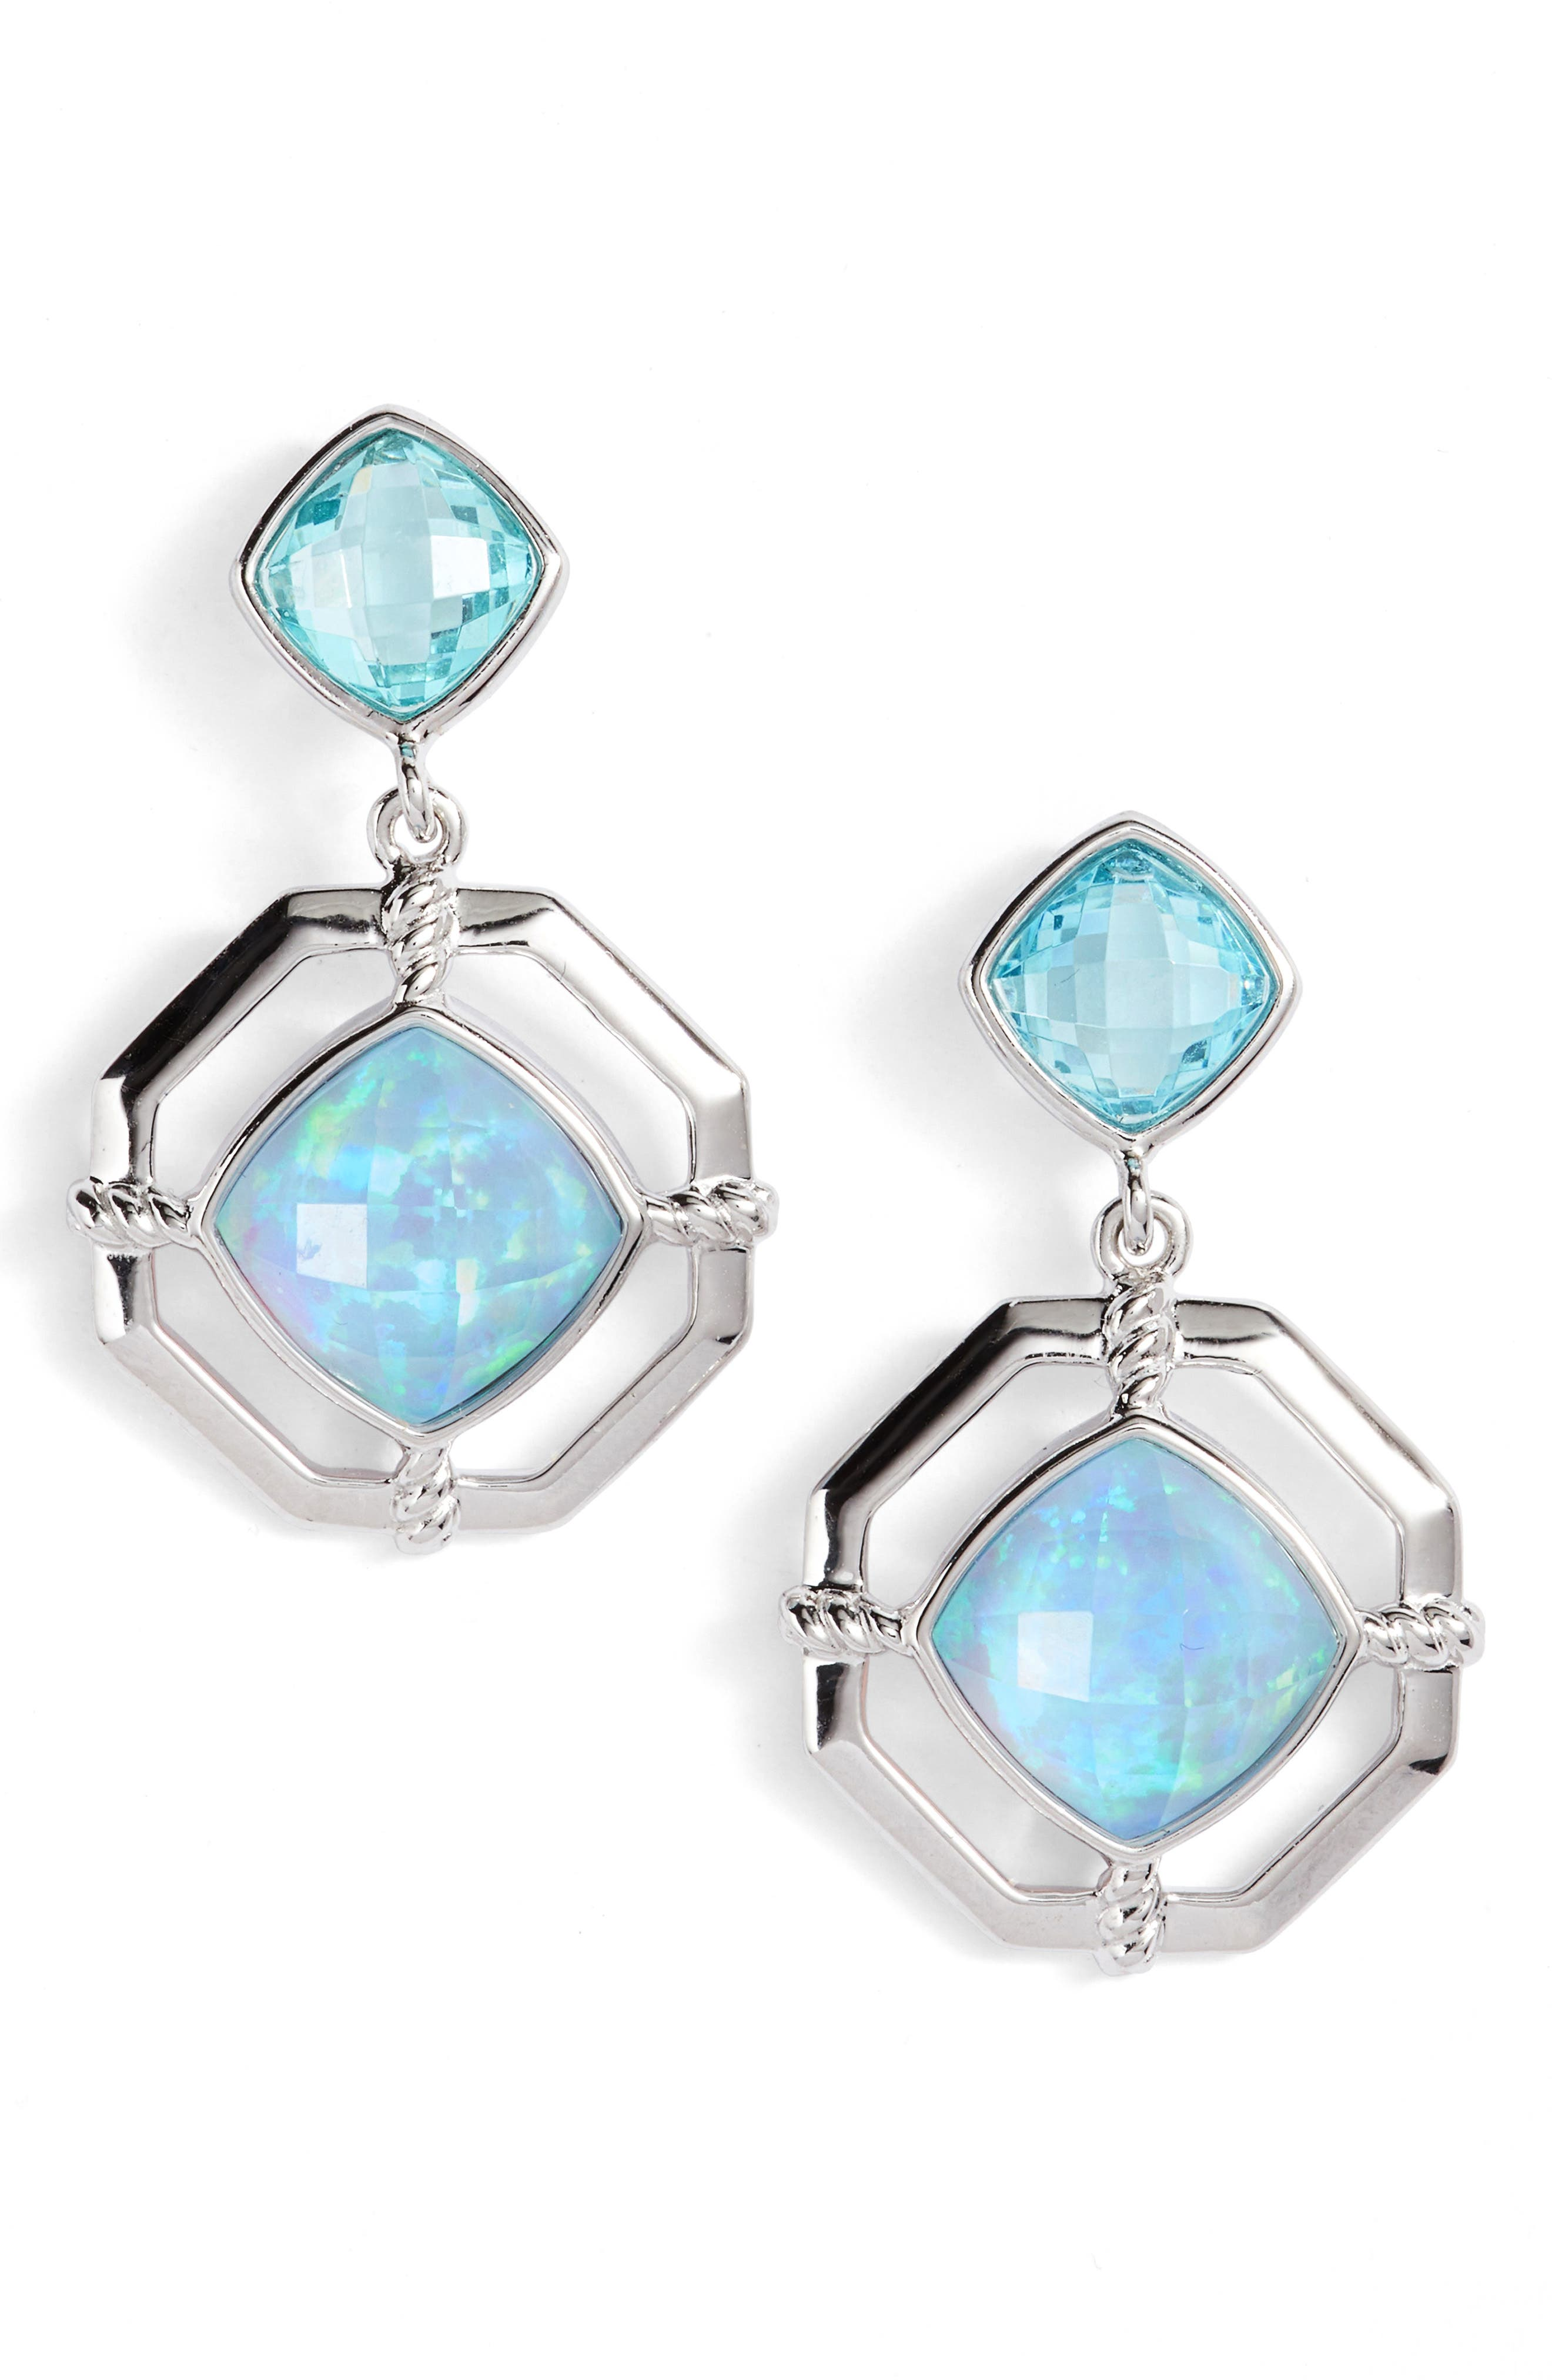 Paradise Double Drop Earrings,                             Main thumbnail 1, color,                             040